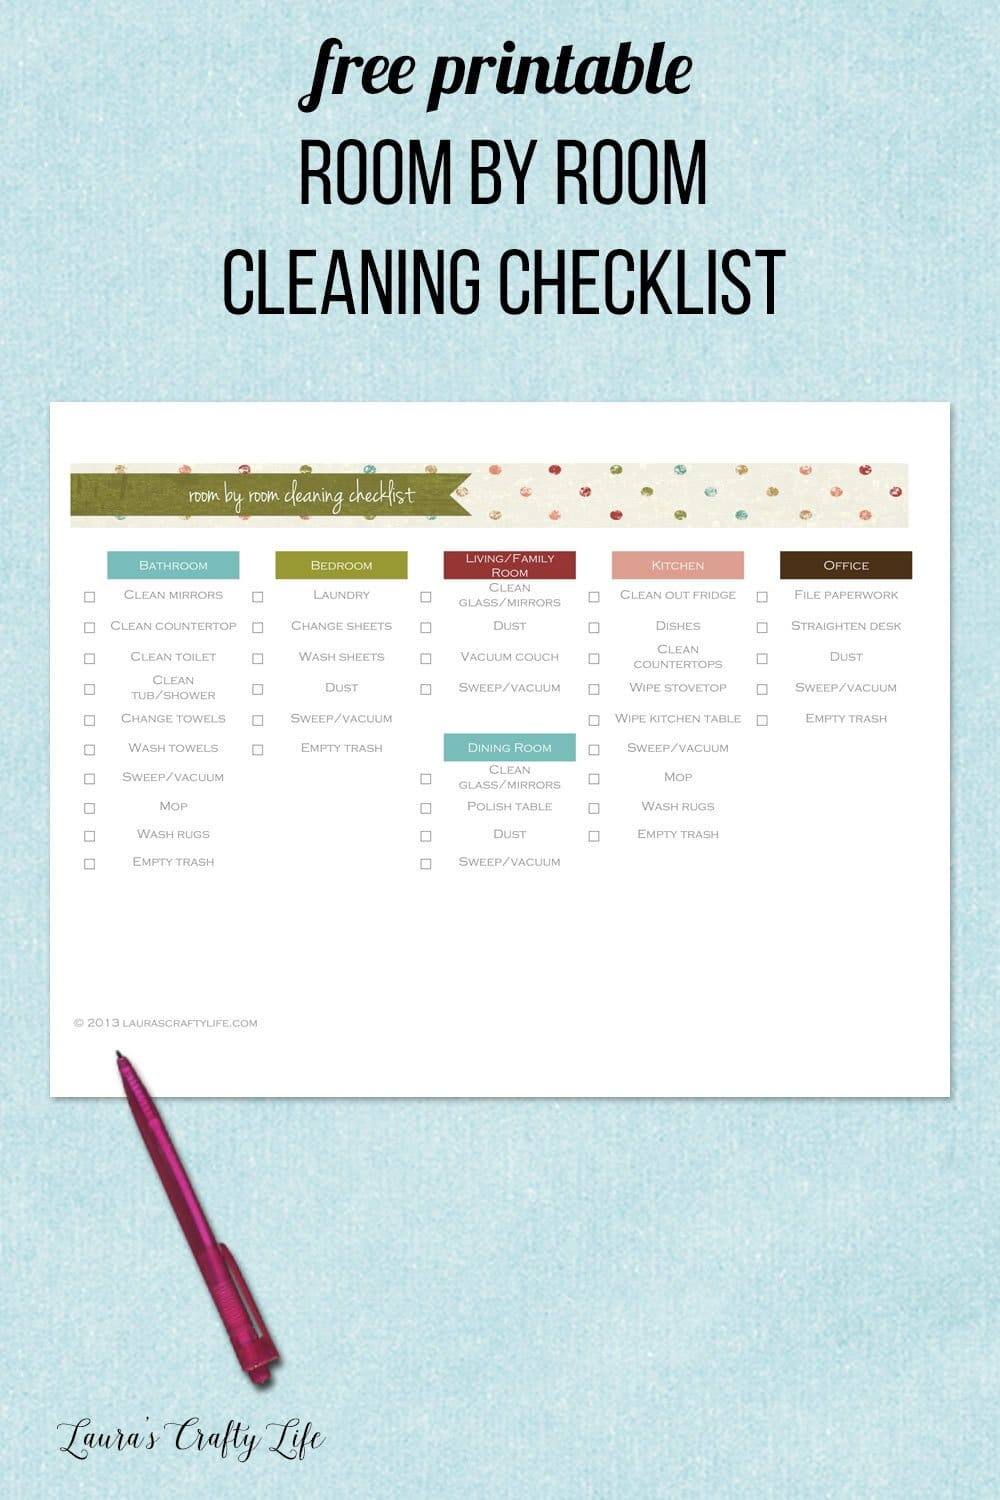 free printable room by room cleaning checklist